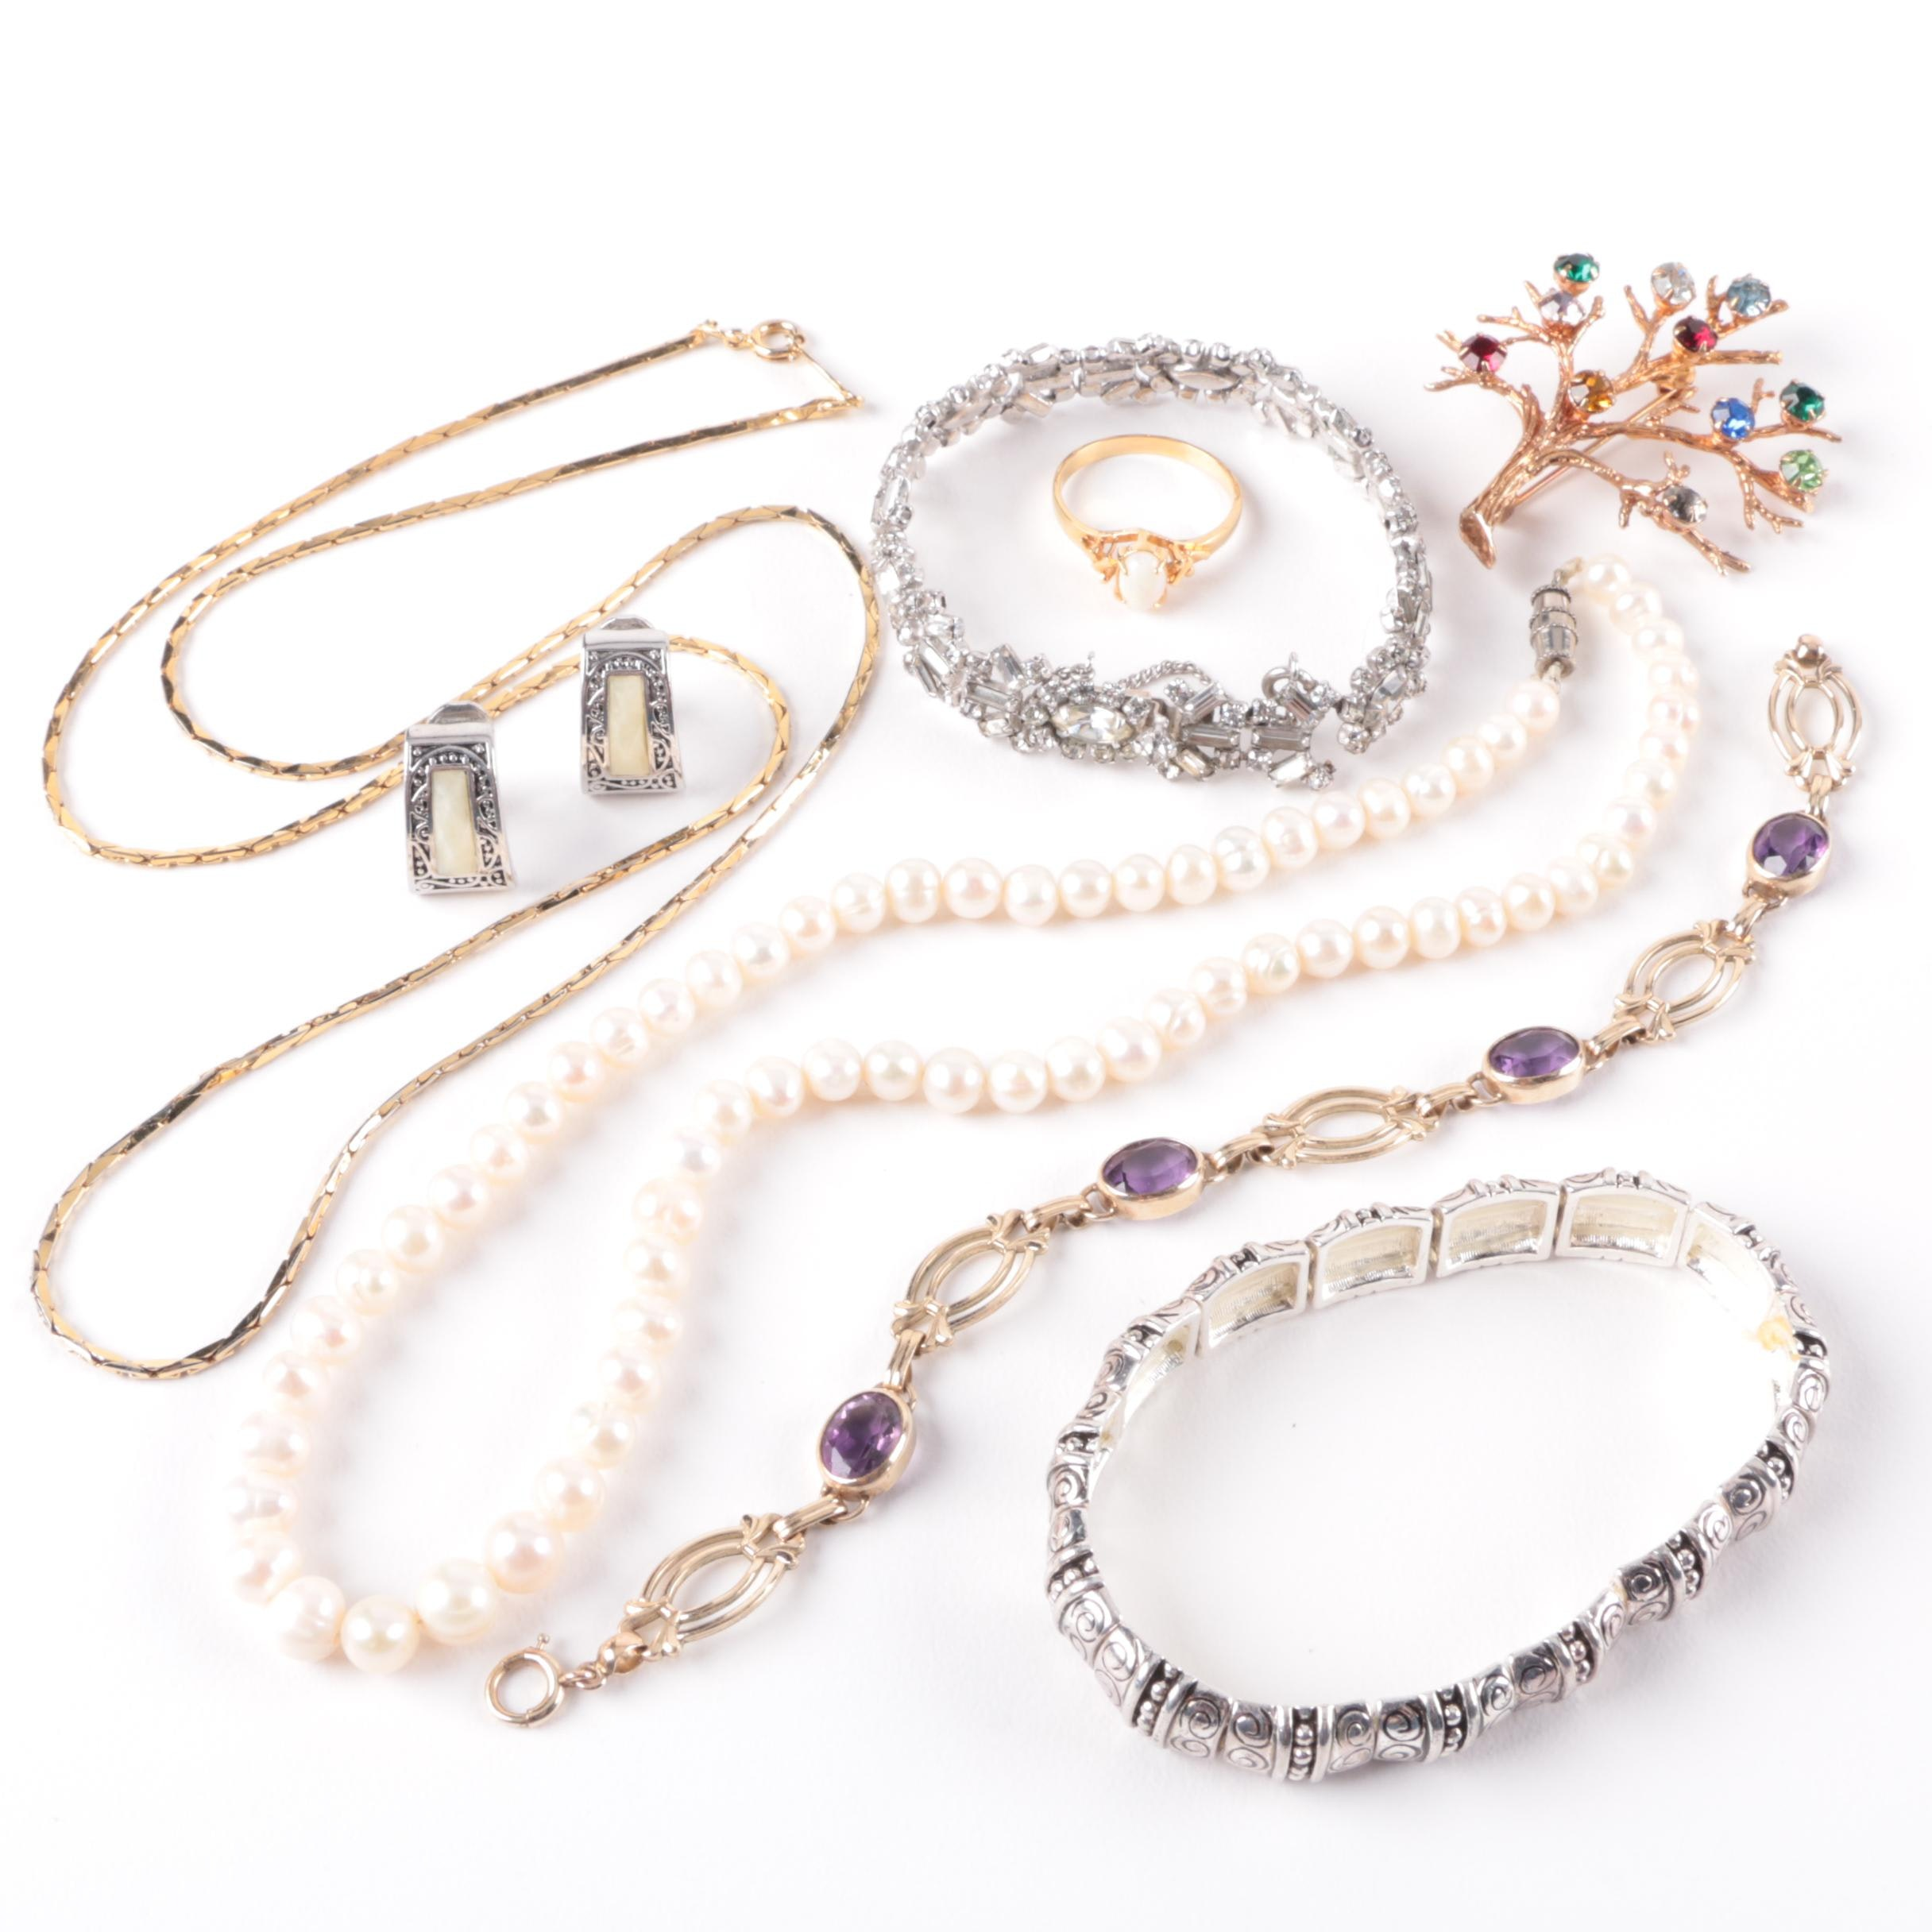 Assortment of Opal, Amethyst and Cultured Pearl Jewelry